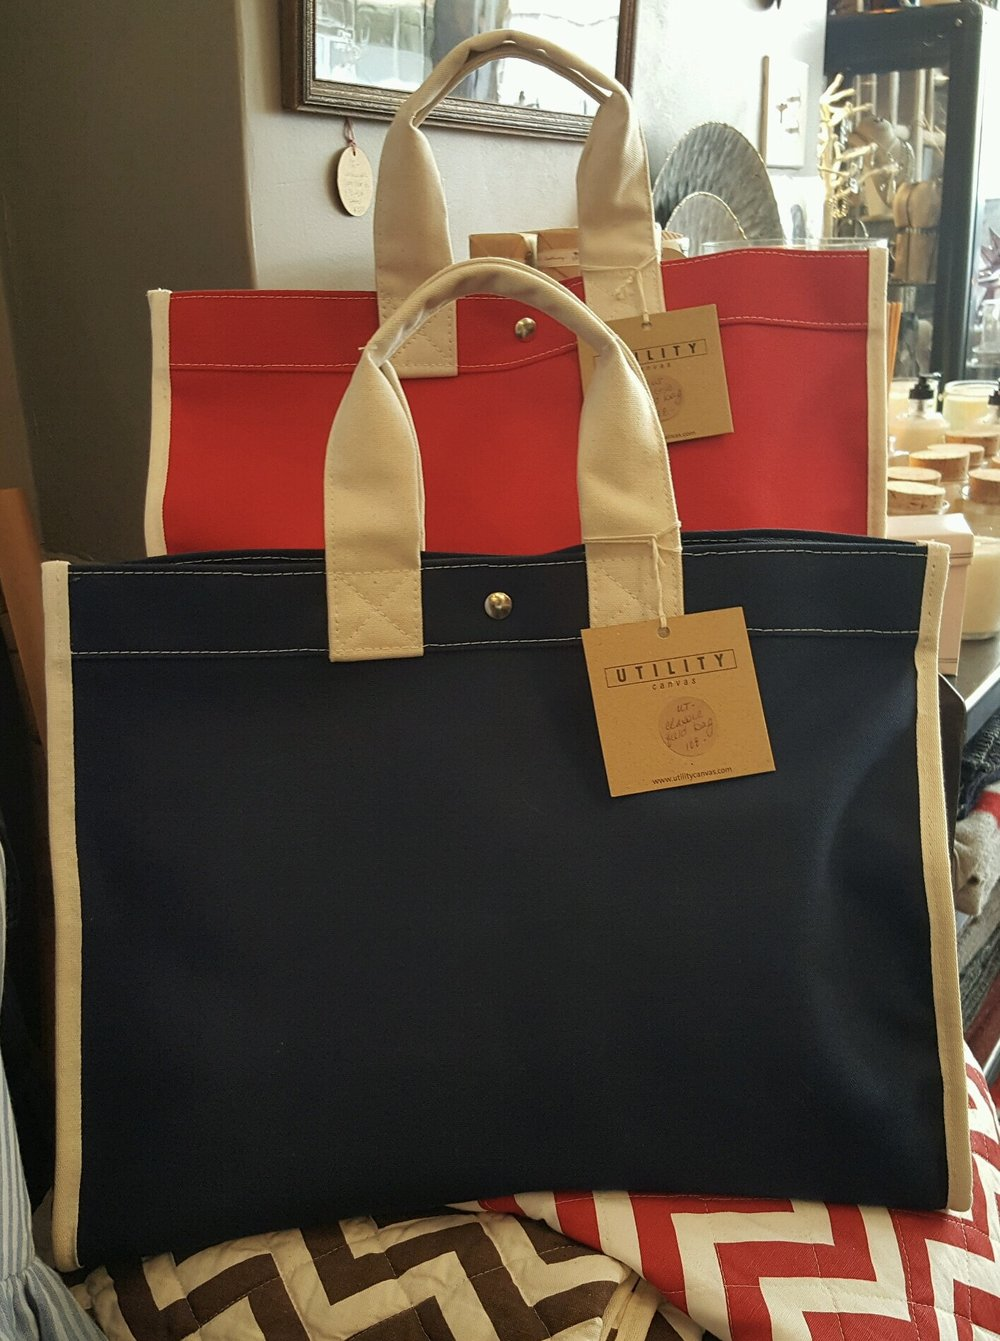 FullSizeRender-9 copy.jpg